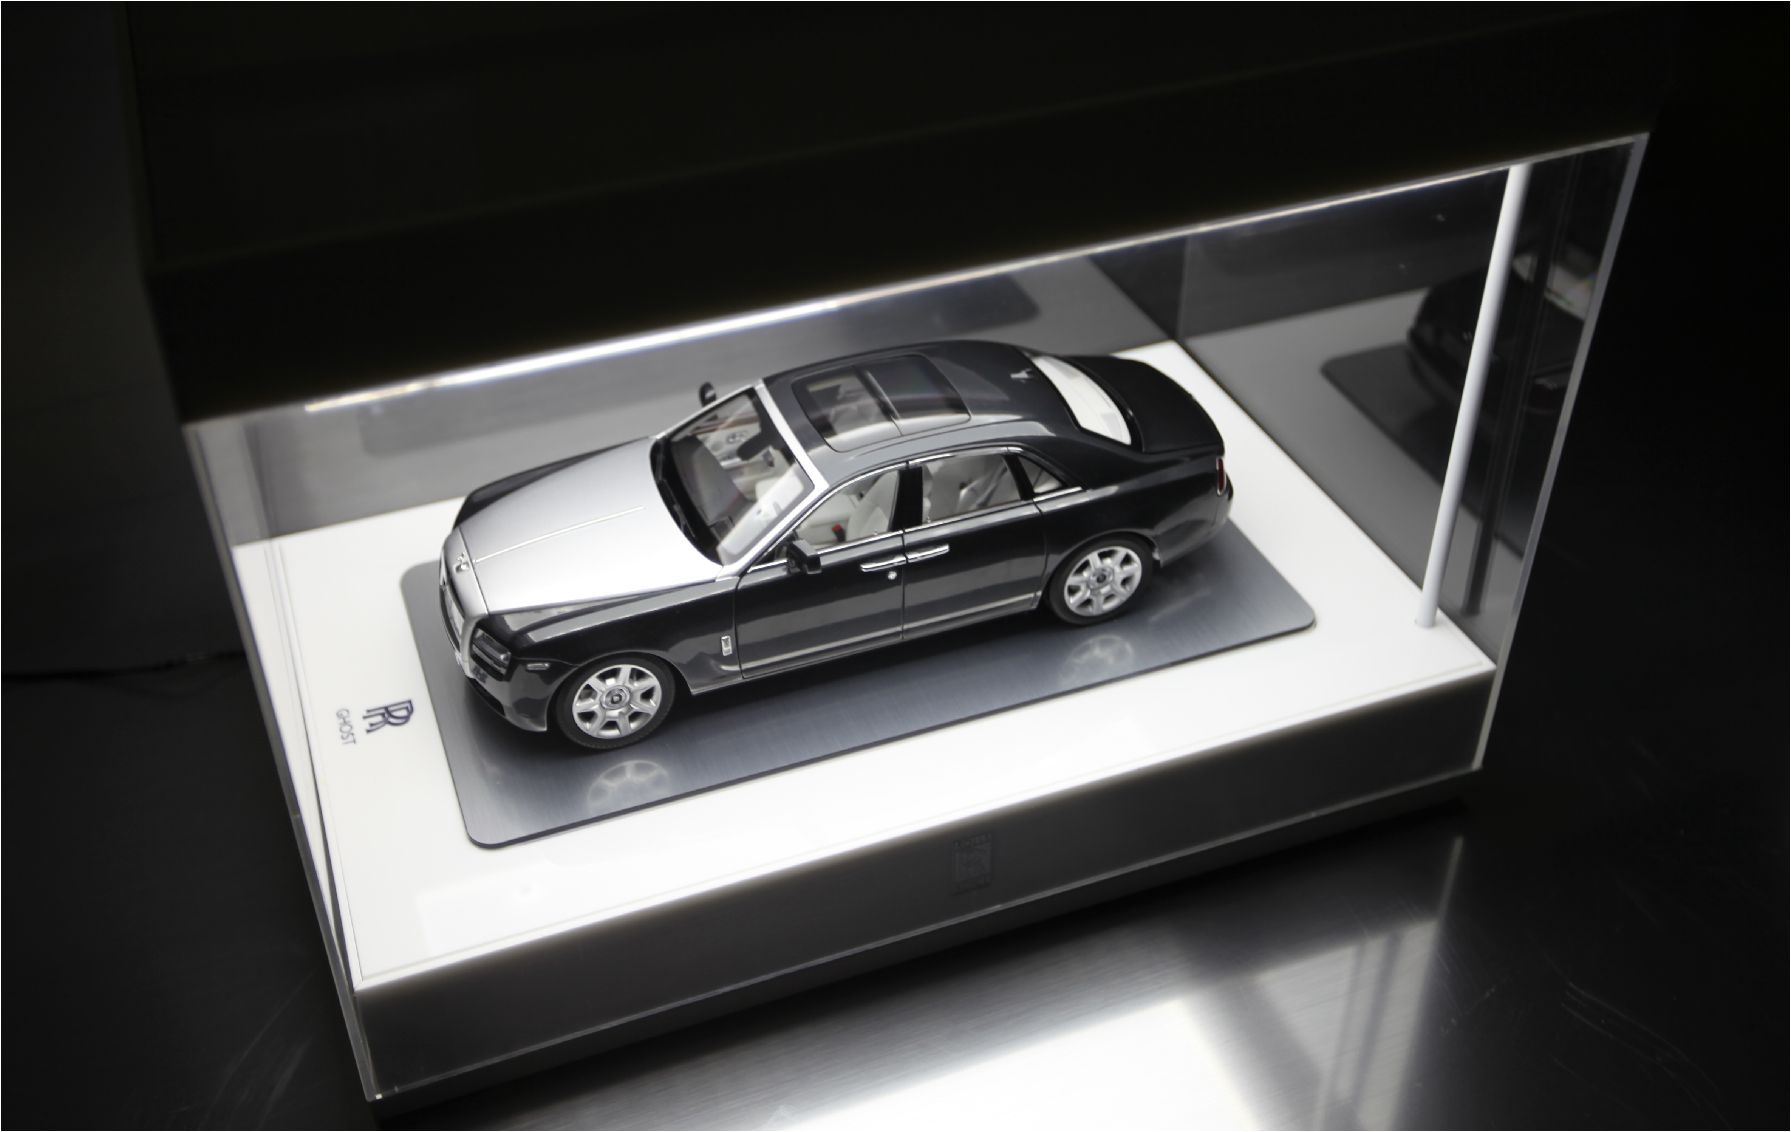 Model Display Cases 1 18 Scale Led Display Case Model Cars Display